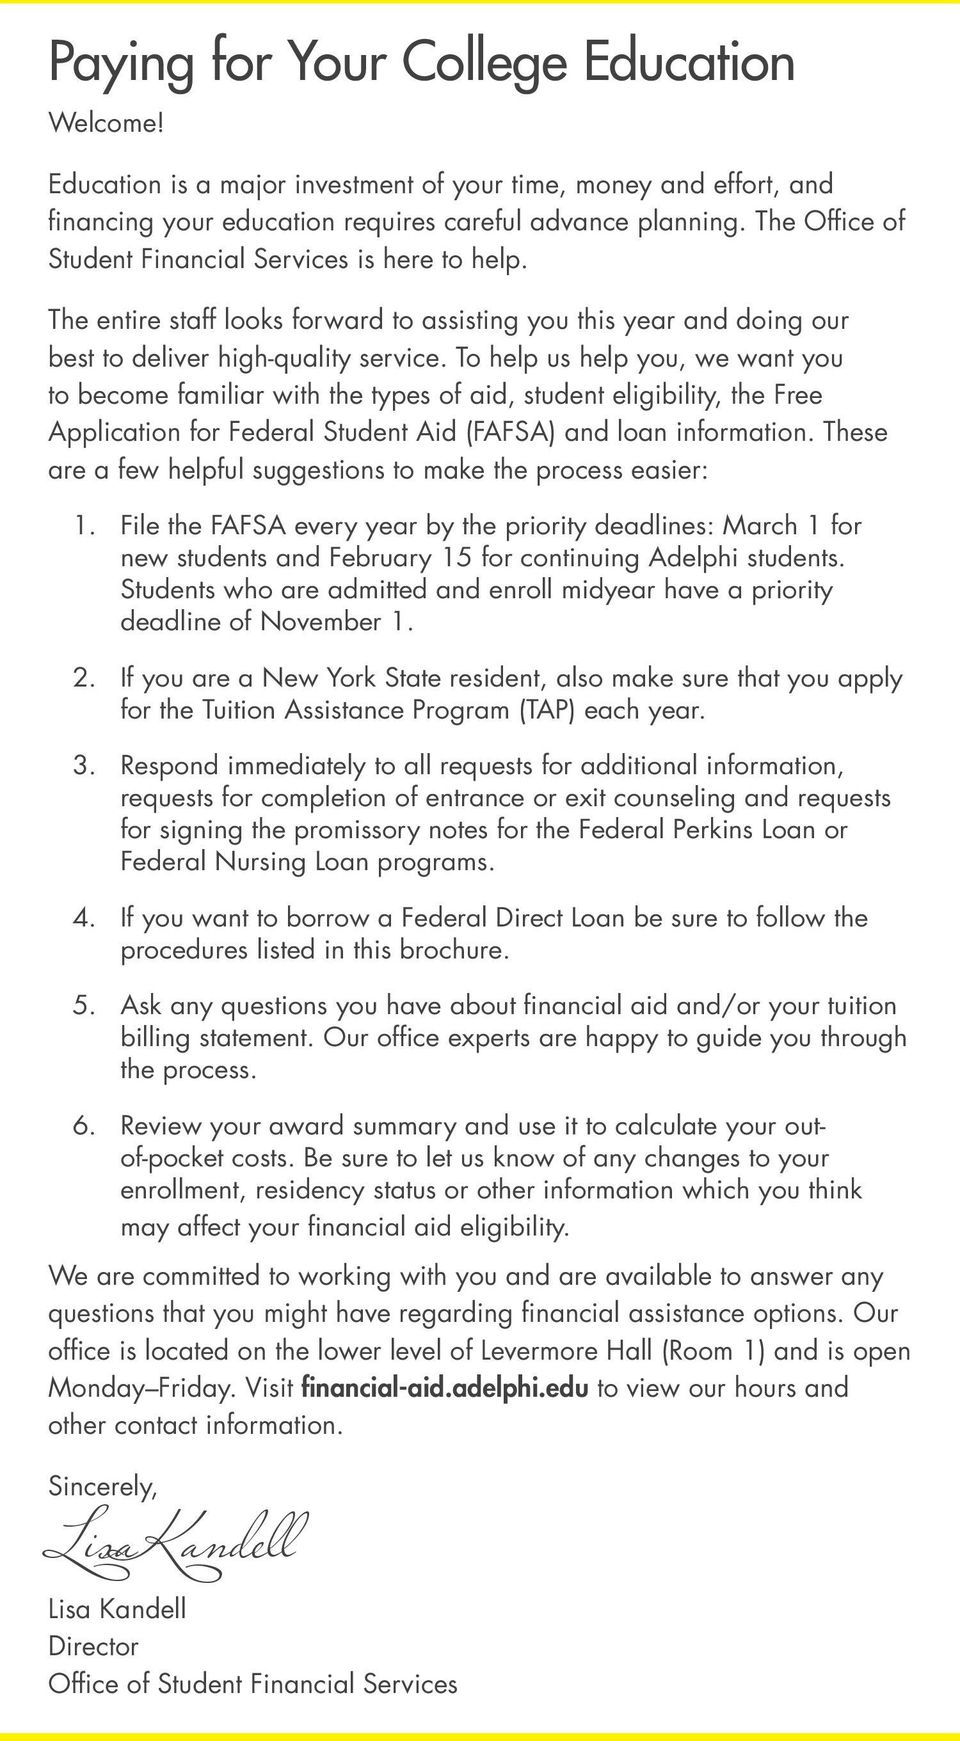 To help us help you, we want you to become familiar with the types of aid, student eligibility, the Free Application for Federal Student Aid (FAFSA) and loan information.